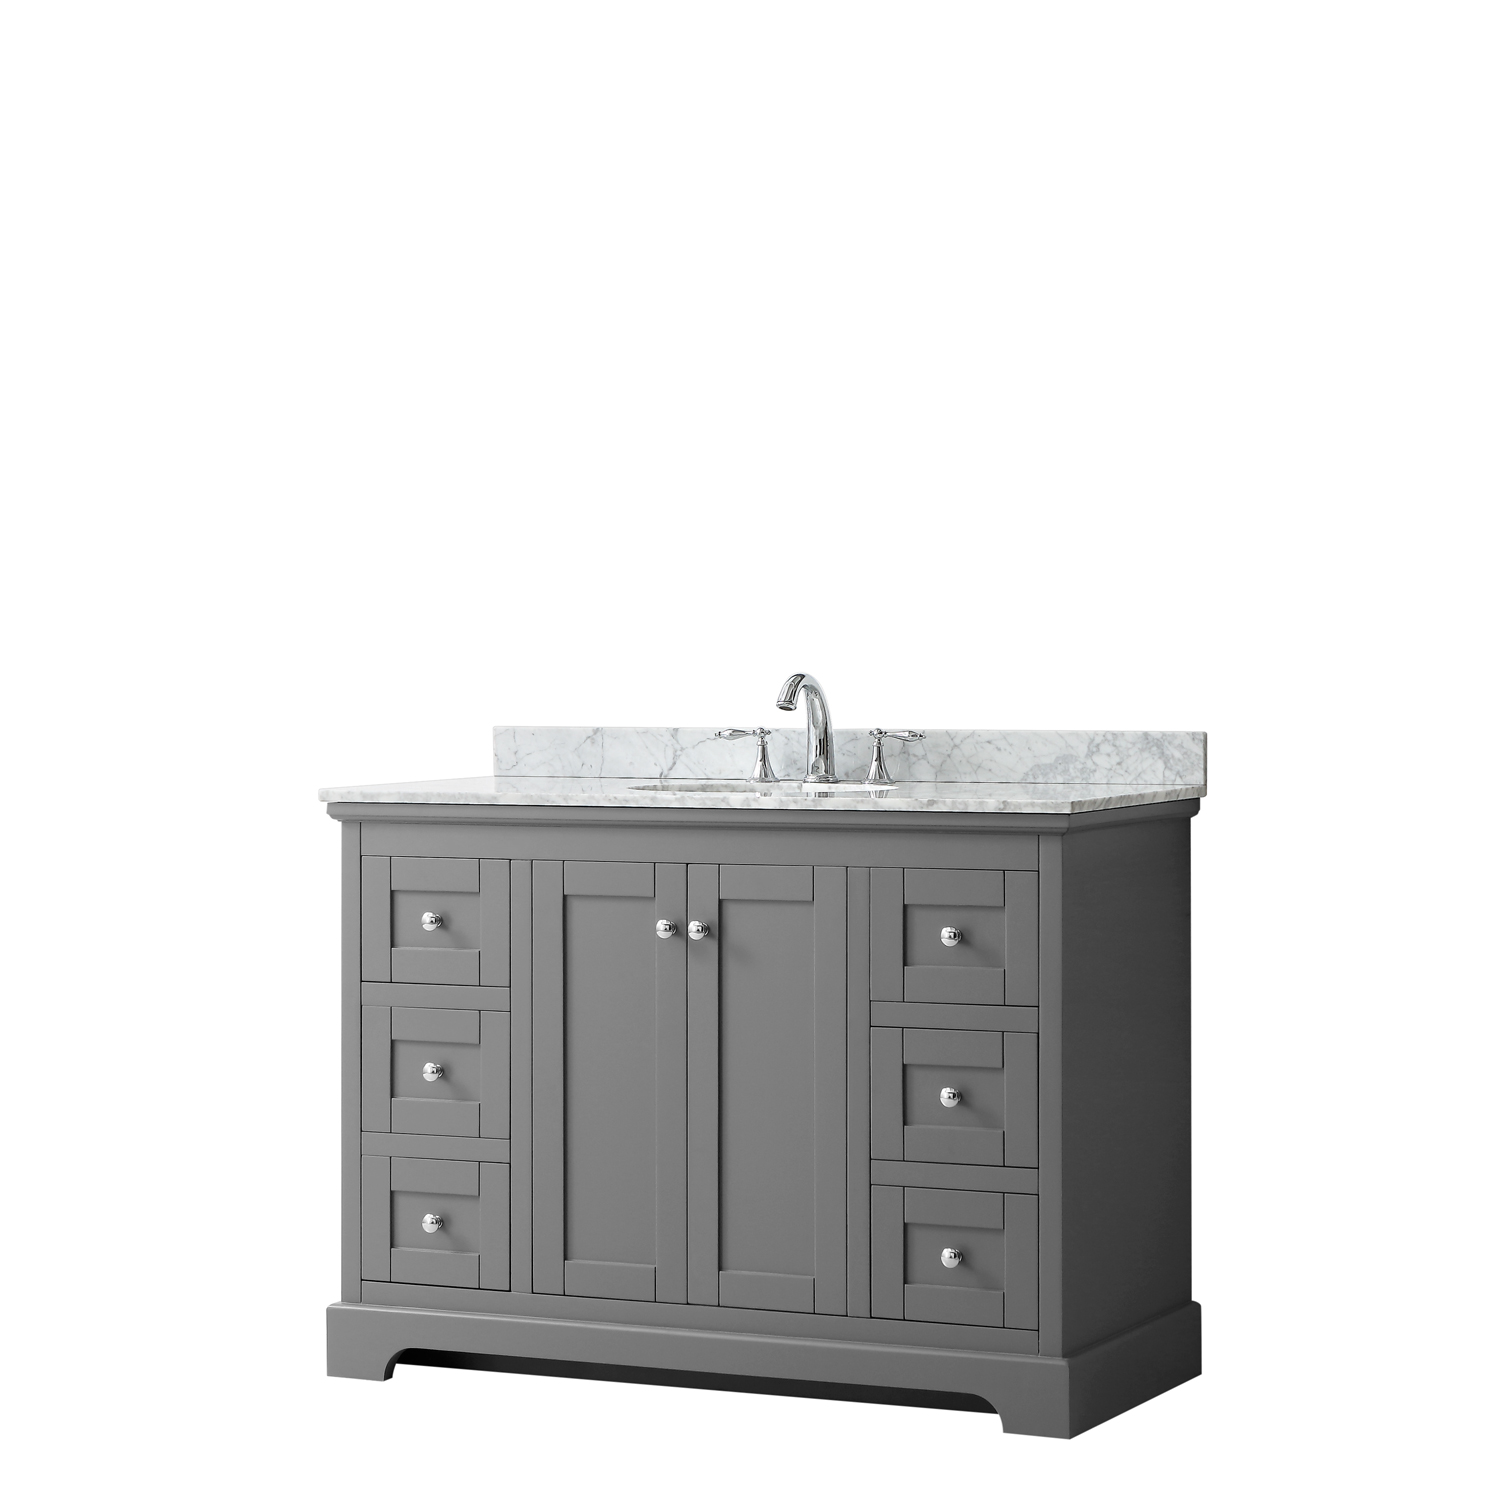 "48"" Single Bathroom Vanity in Dark Gray, No Countertop, No Sink, and No Mirror"